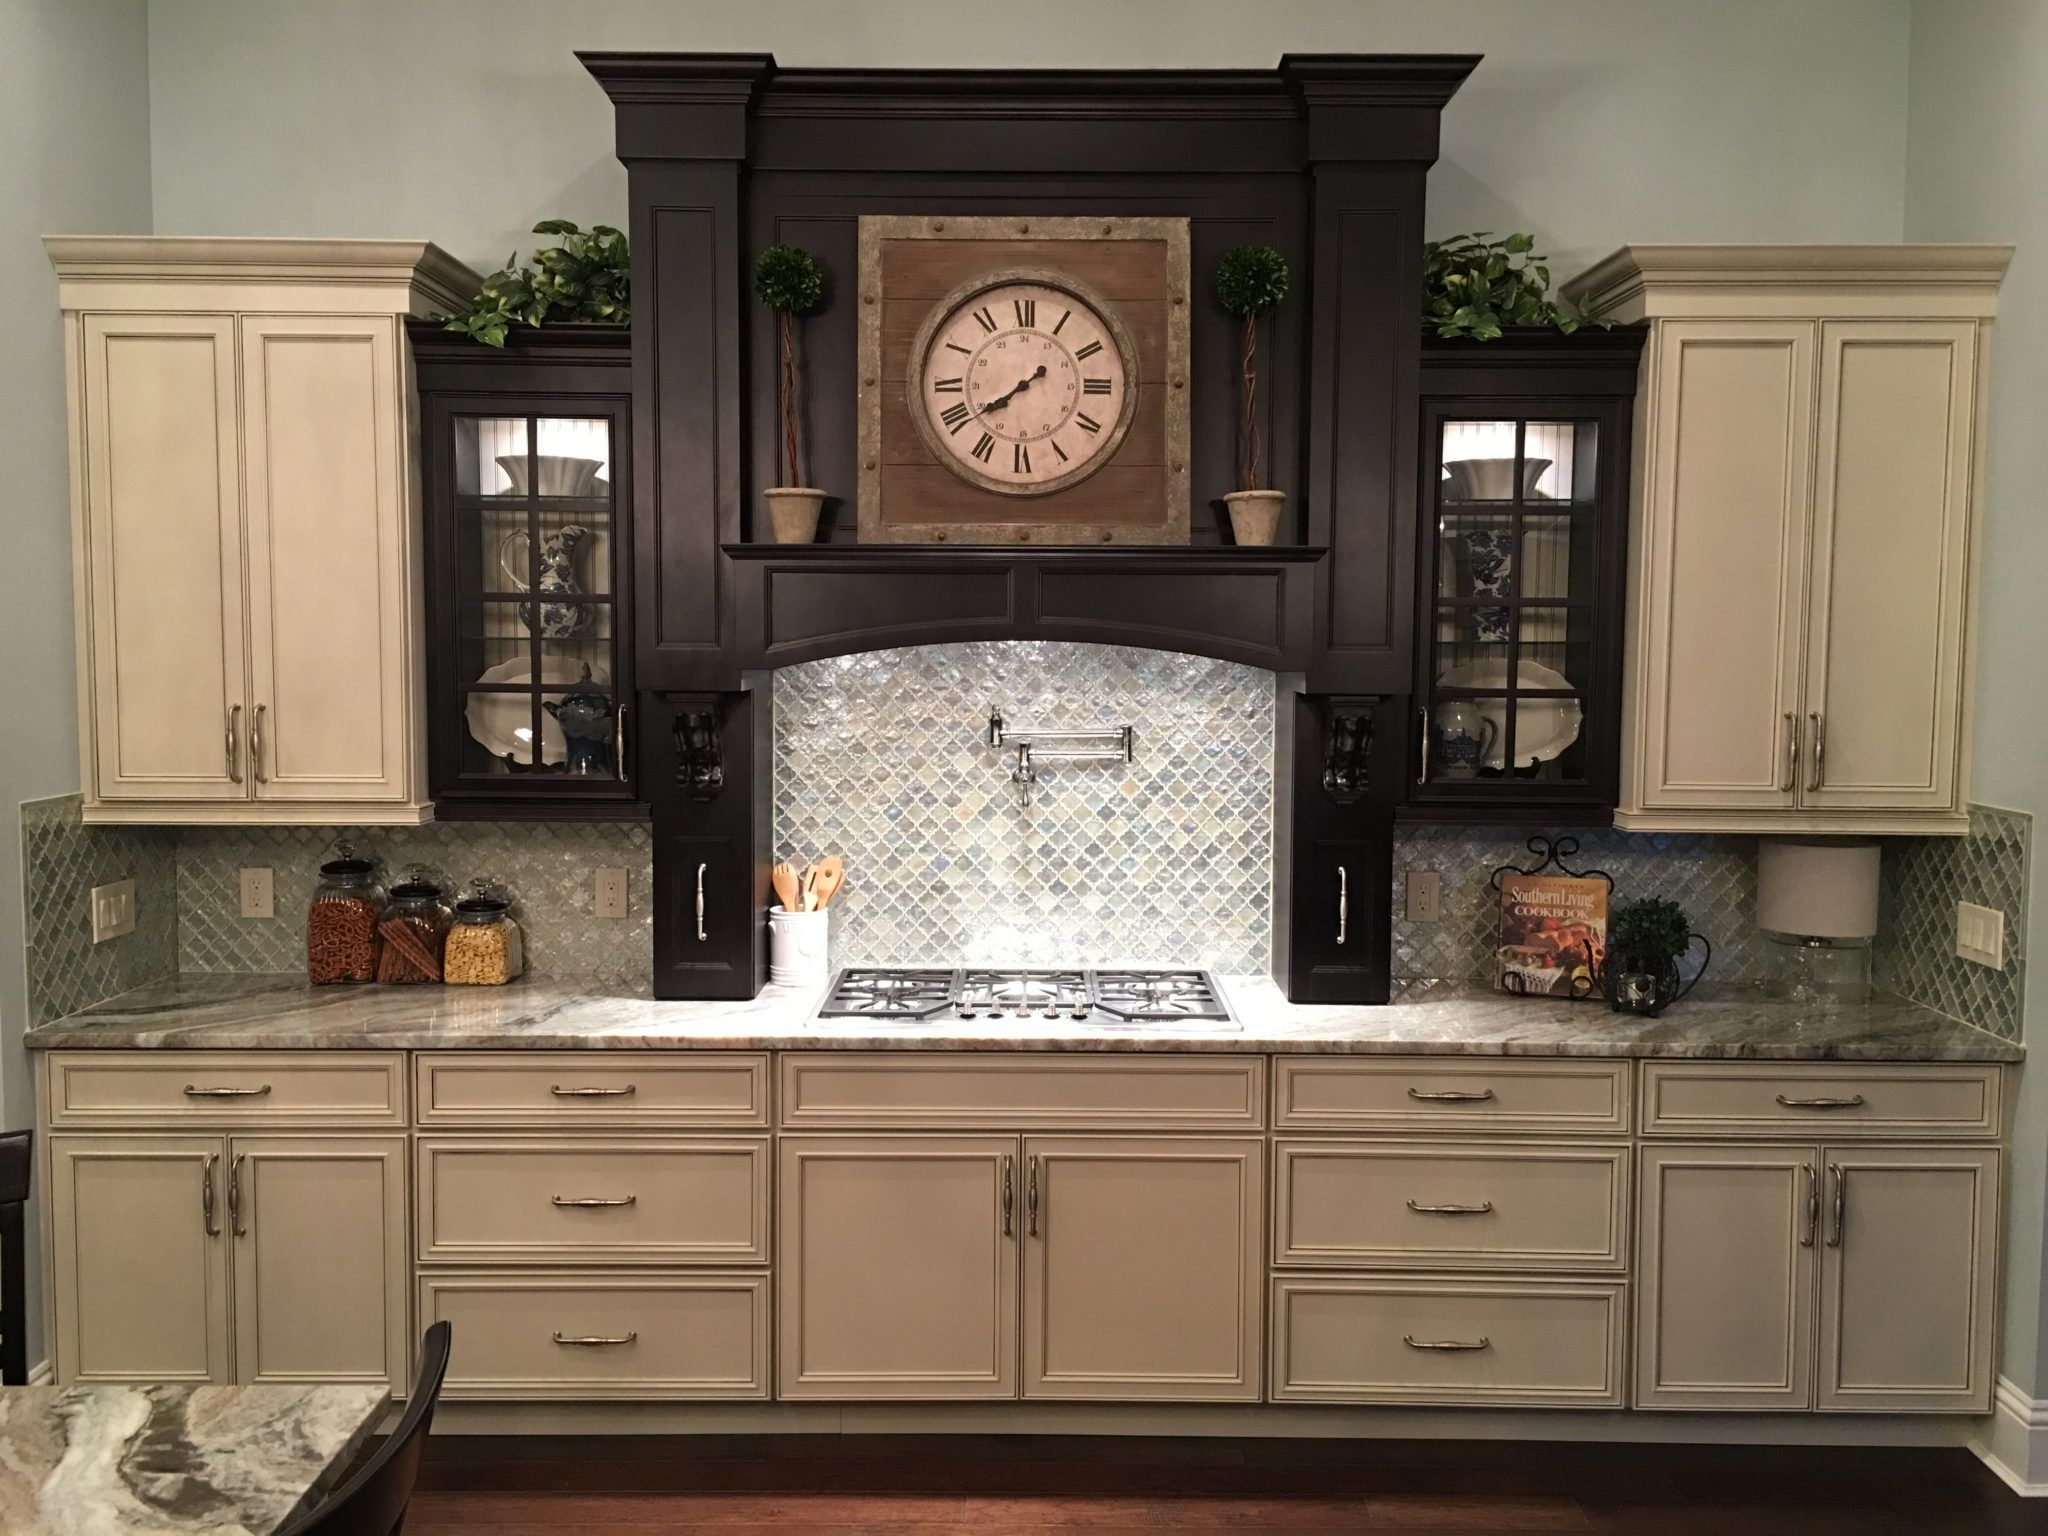 Affordable Quality Kitchens And Bathrooms